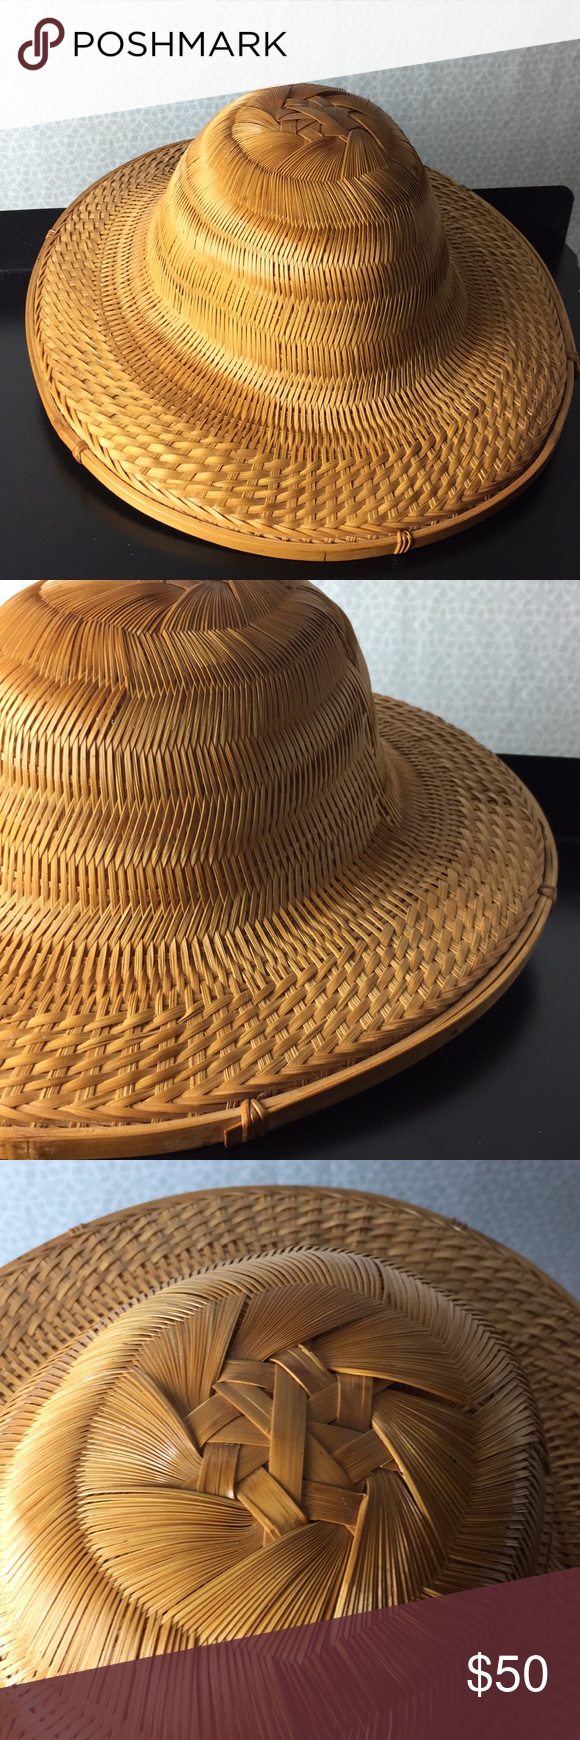 Vintage Asian Rice Paddy Hat Women Accessories Hats Women Accessories Accessories Hats